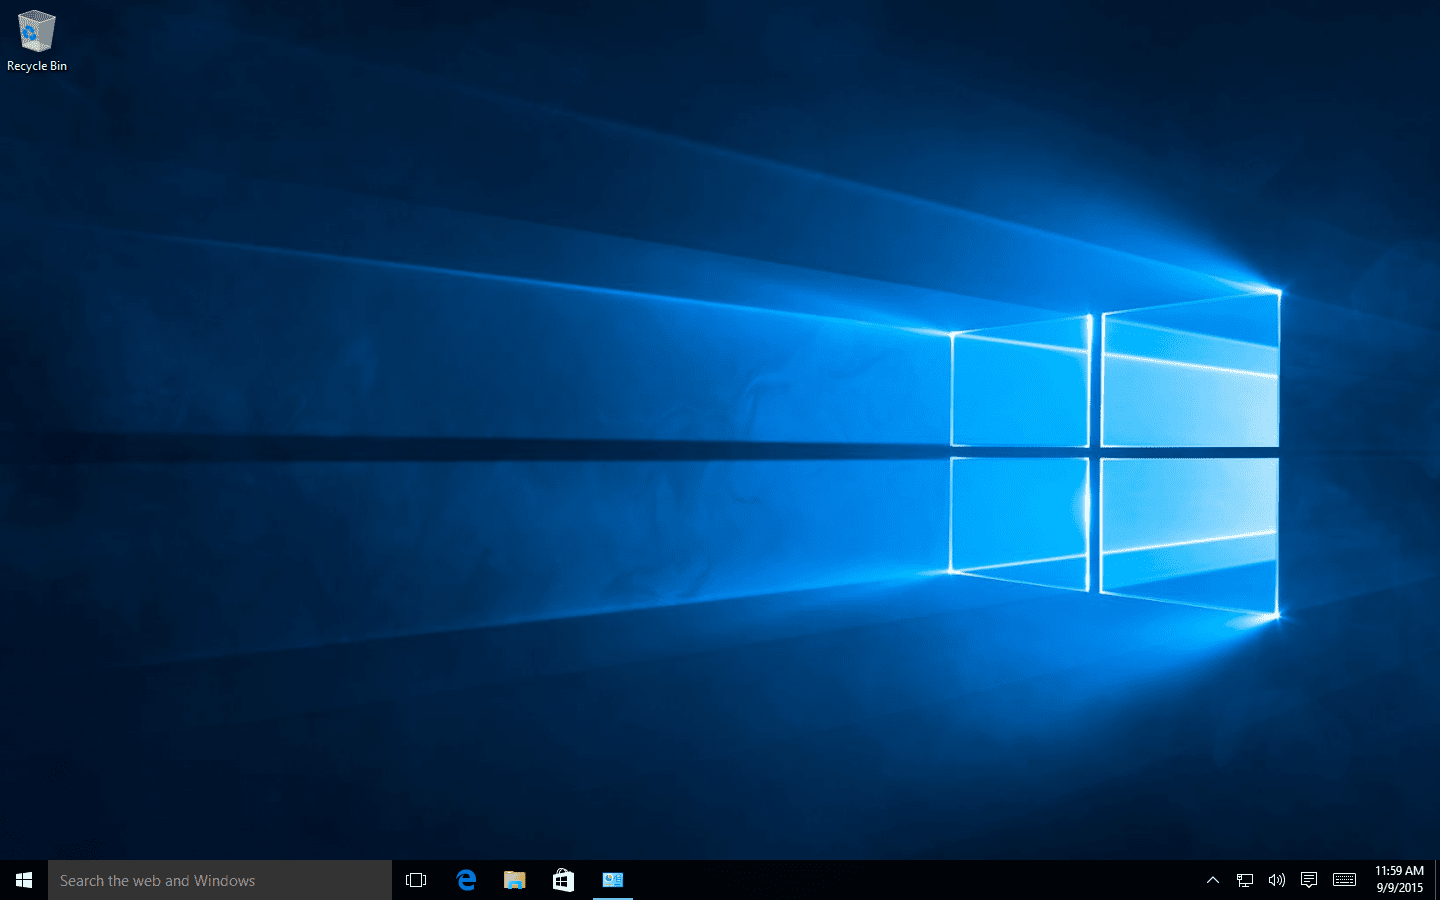 Screenshot Of The Windows 10 Desktop Your Smartphone Runs An Operating System